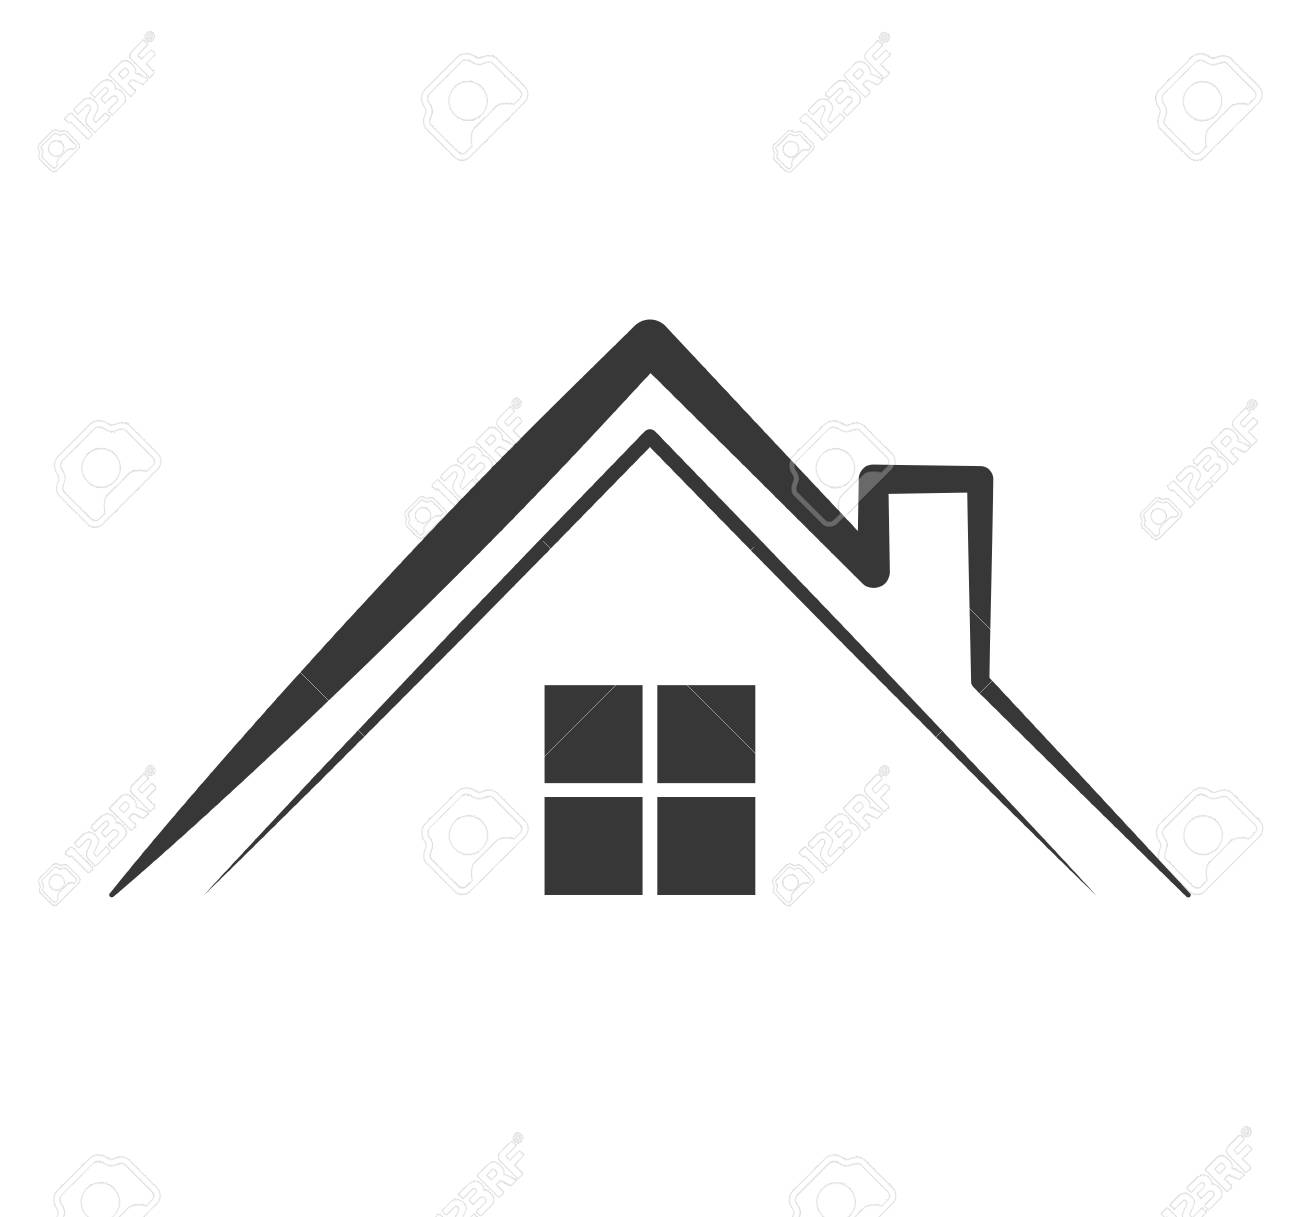 home house silhouette real estate icon isolated and flat